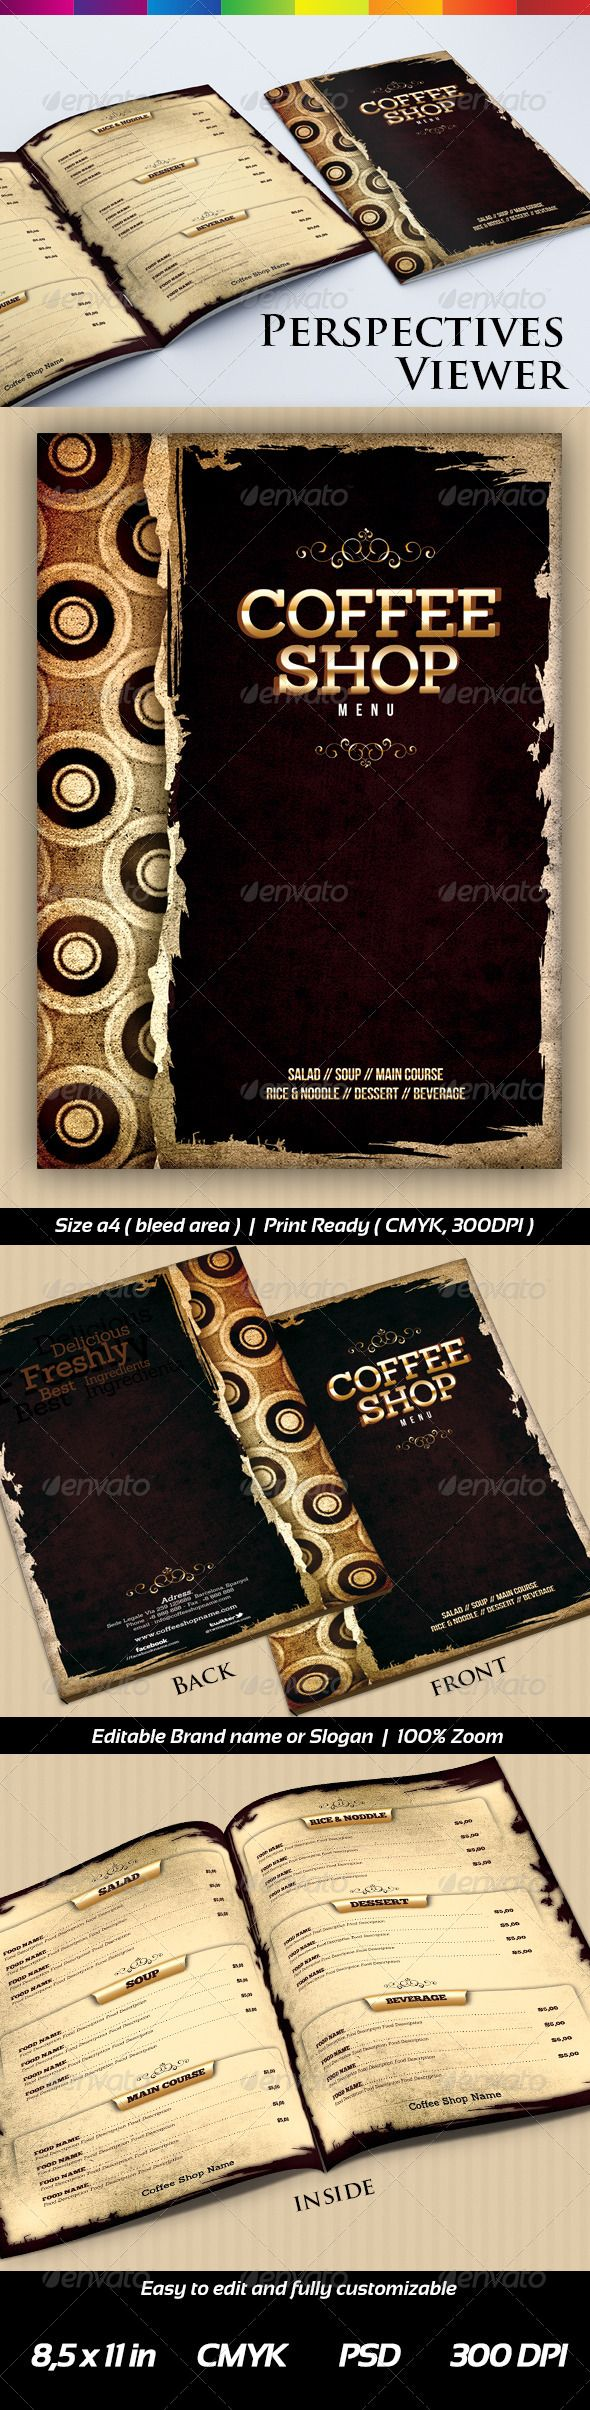 Coffee Shop #Menu Templates  - #Food Menus Print #Templates Download here: https://graphicriver.net/item/coffee-shop-menu-templates-/6641630?ref=alena994